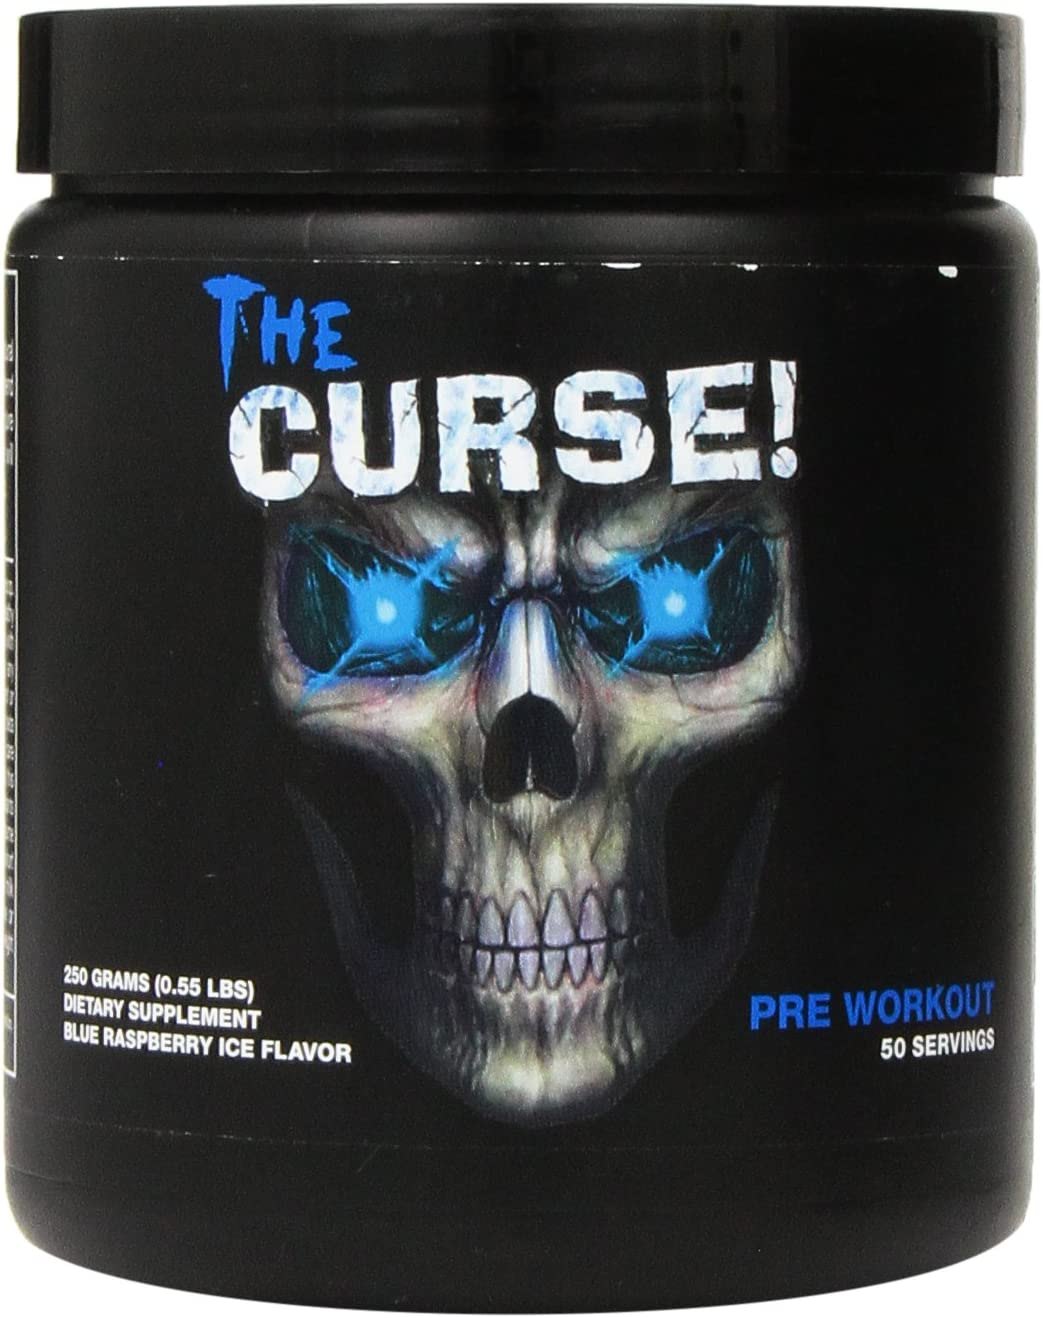 Cobra-Labs-The-Curse-Advanced Pre-Workout 250grams 50 Servings Blue Raspberry